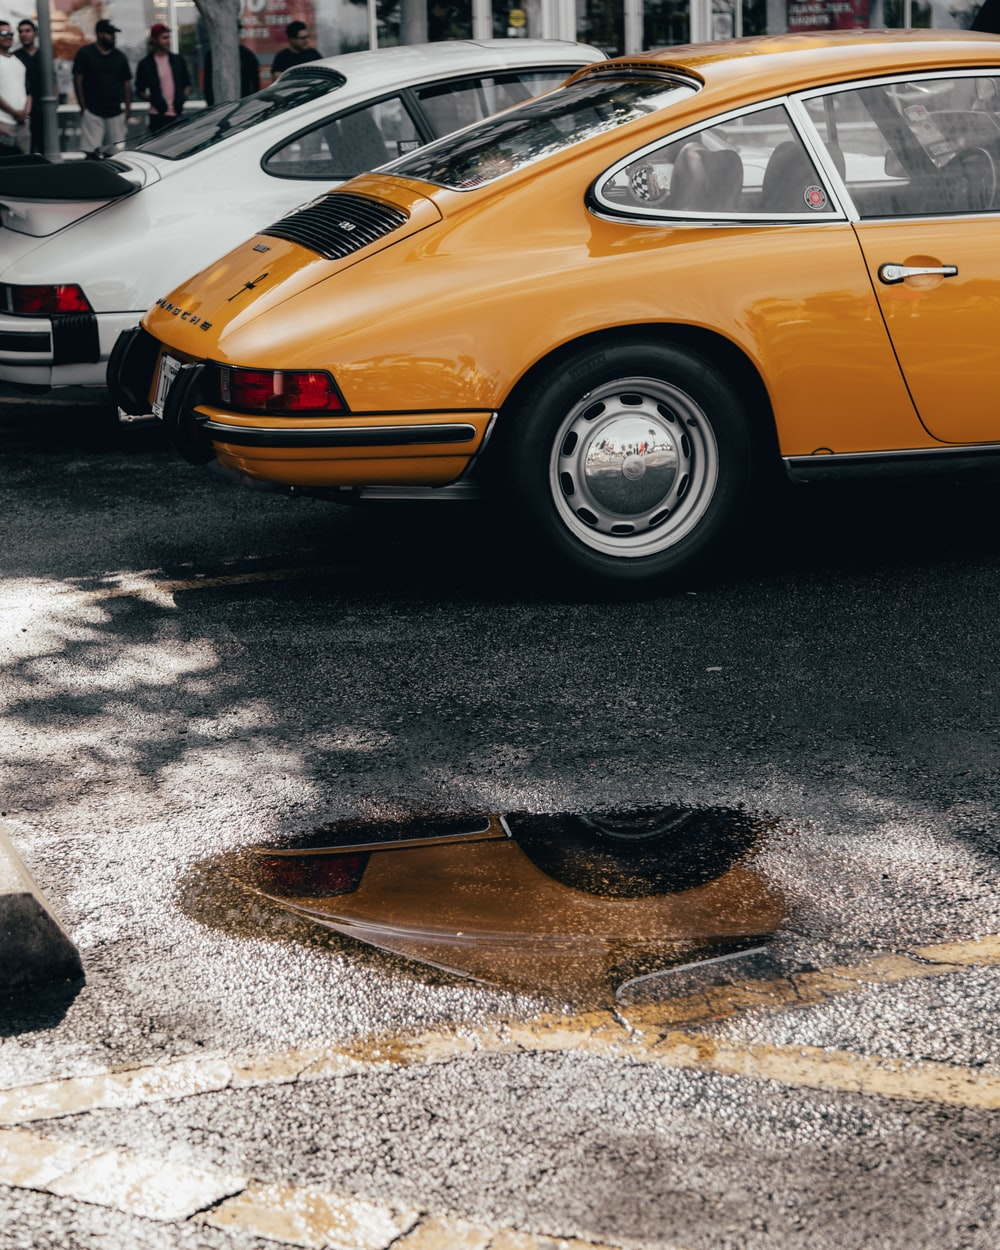 classic orange coupe near puddle of water on road during daytime